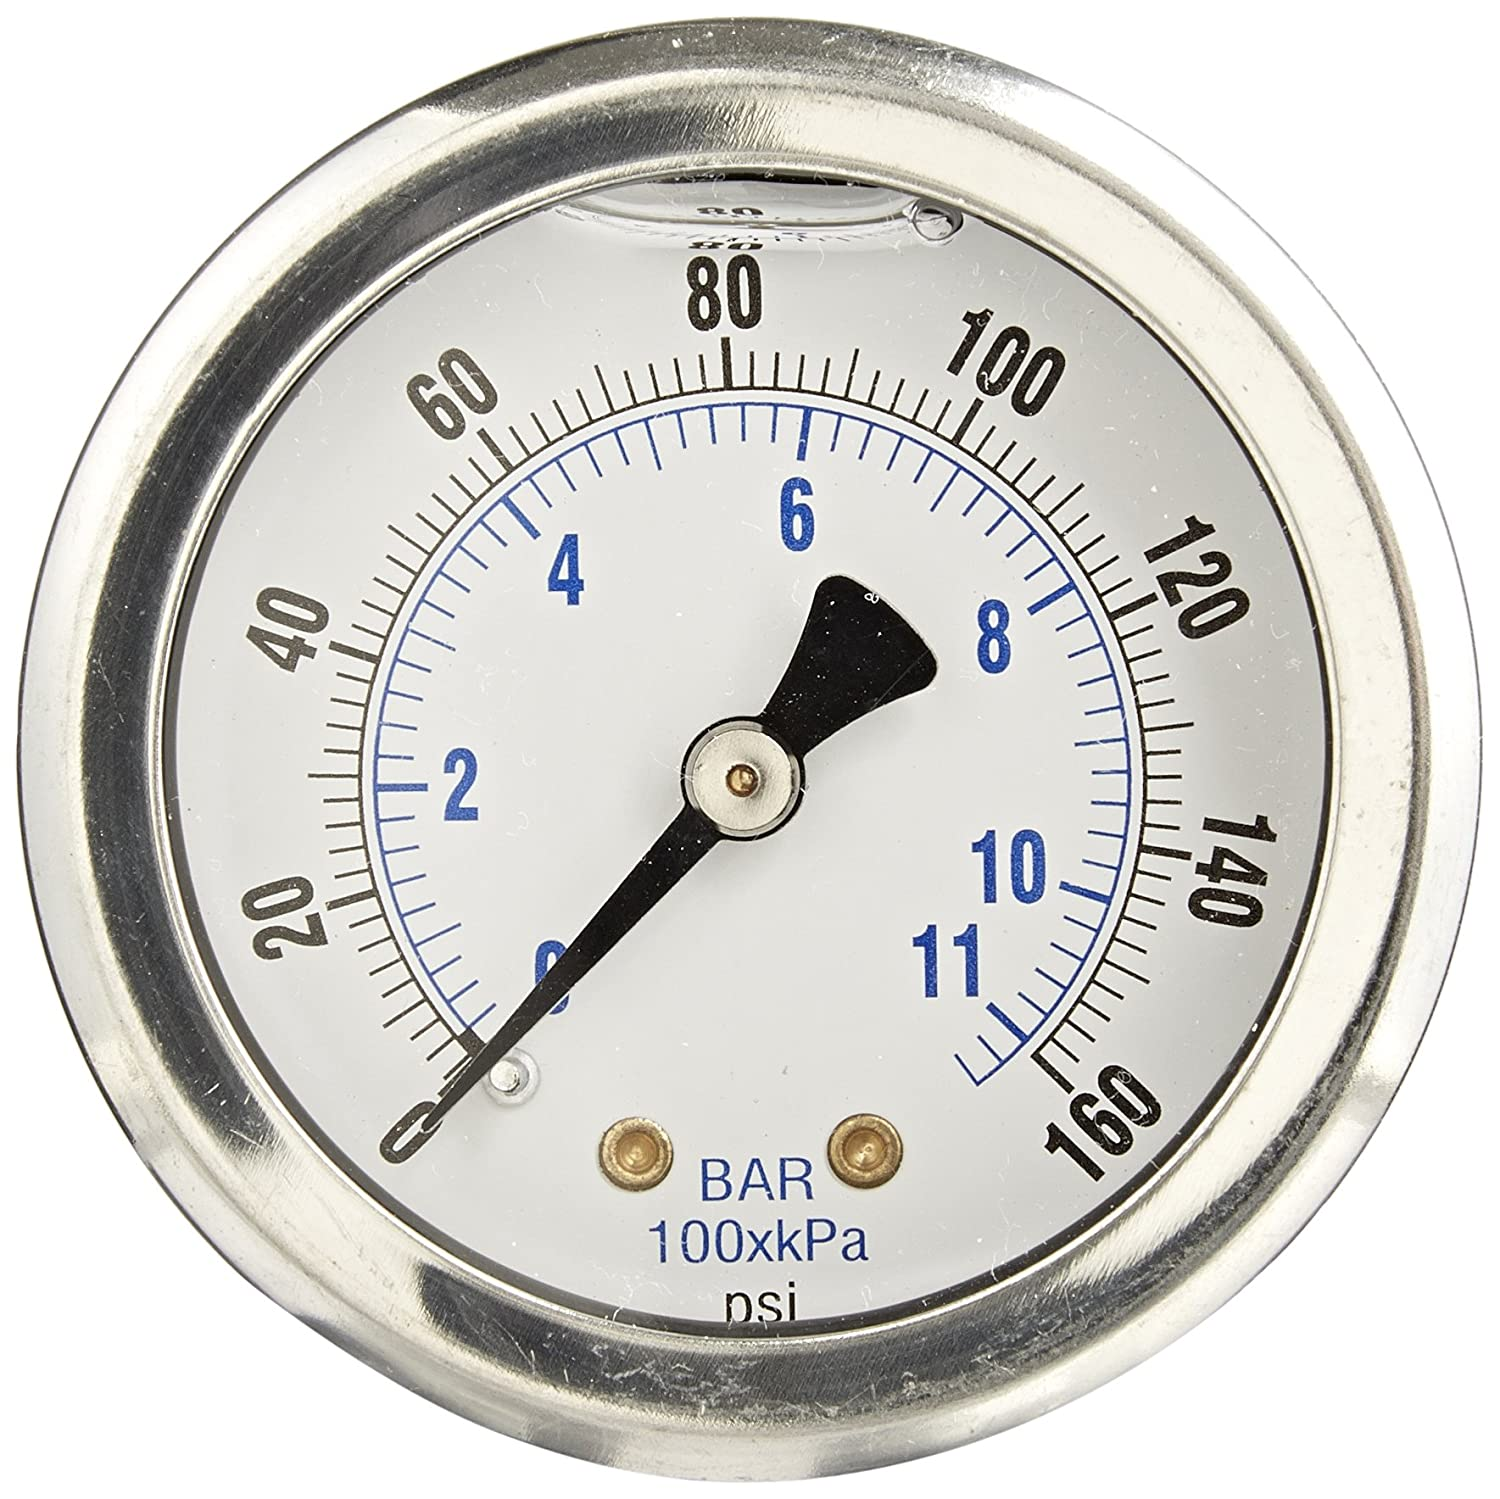 PIC Gauge 202L 204F 2 Dial 0 160 psi Range 1 4 Male NPT Connection Size Center Back Mount Glycerine Filled Pressure Gauge with a Stainless Steel Case Brass Internals Stainless Steel Bezel and Polycarbonate Lens